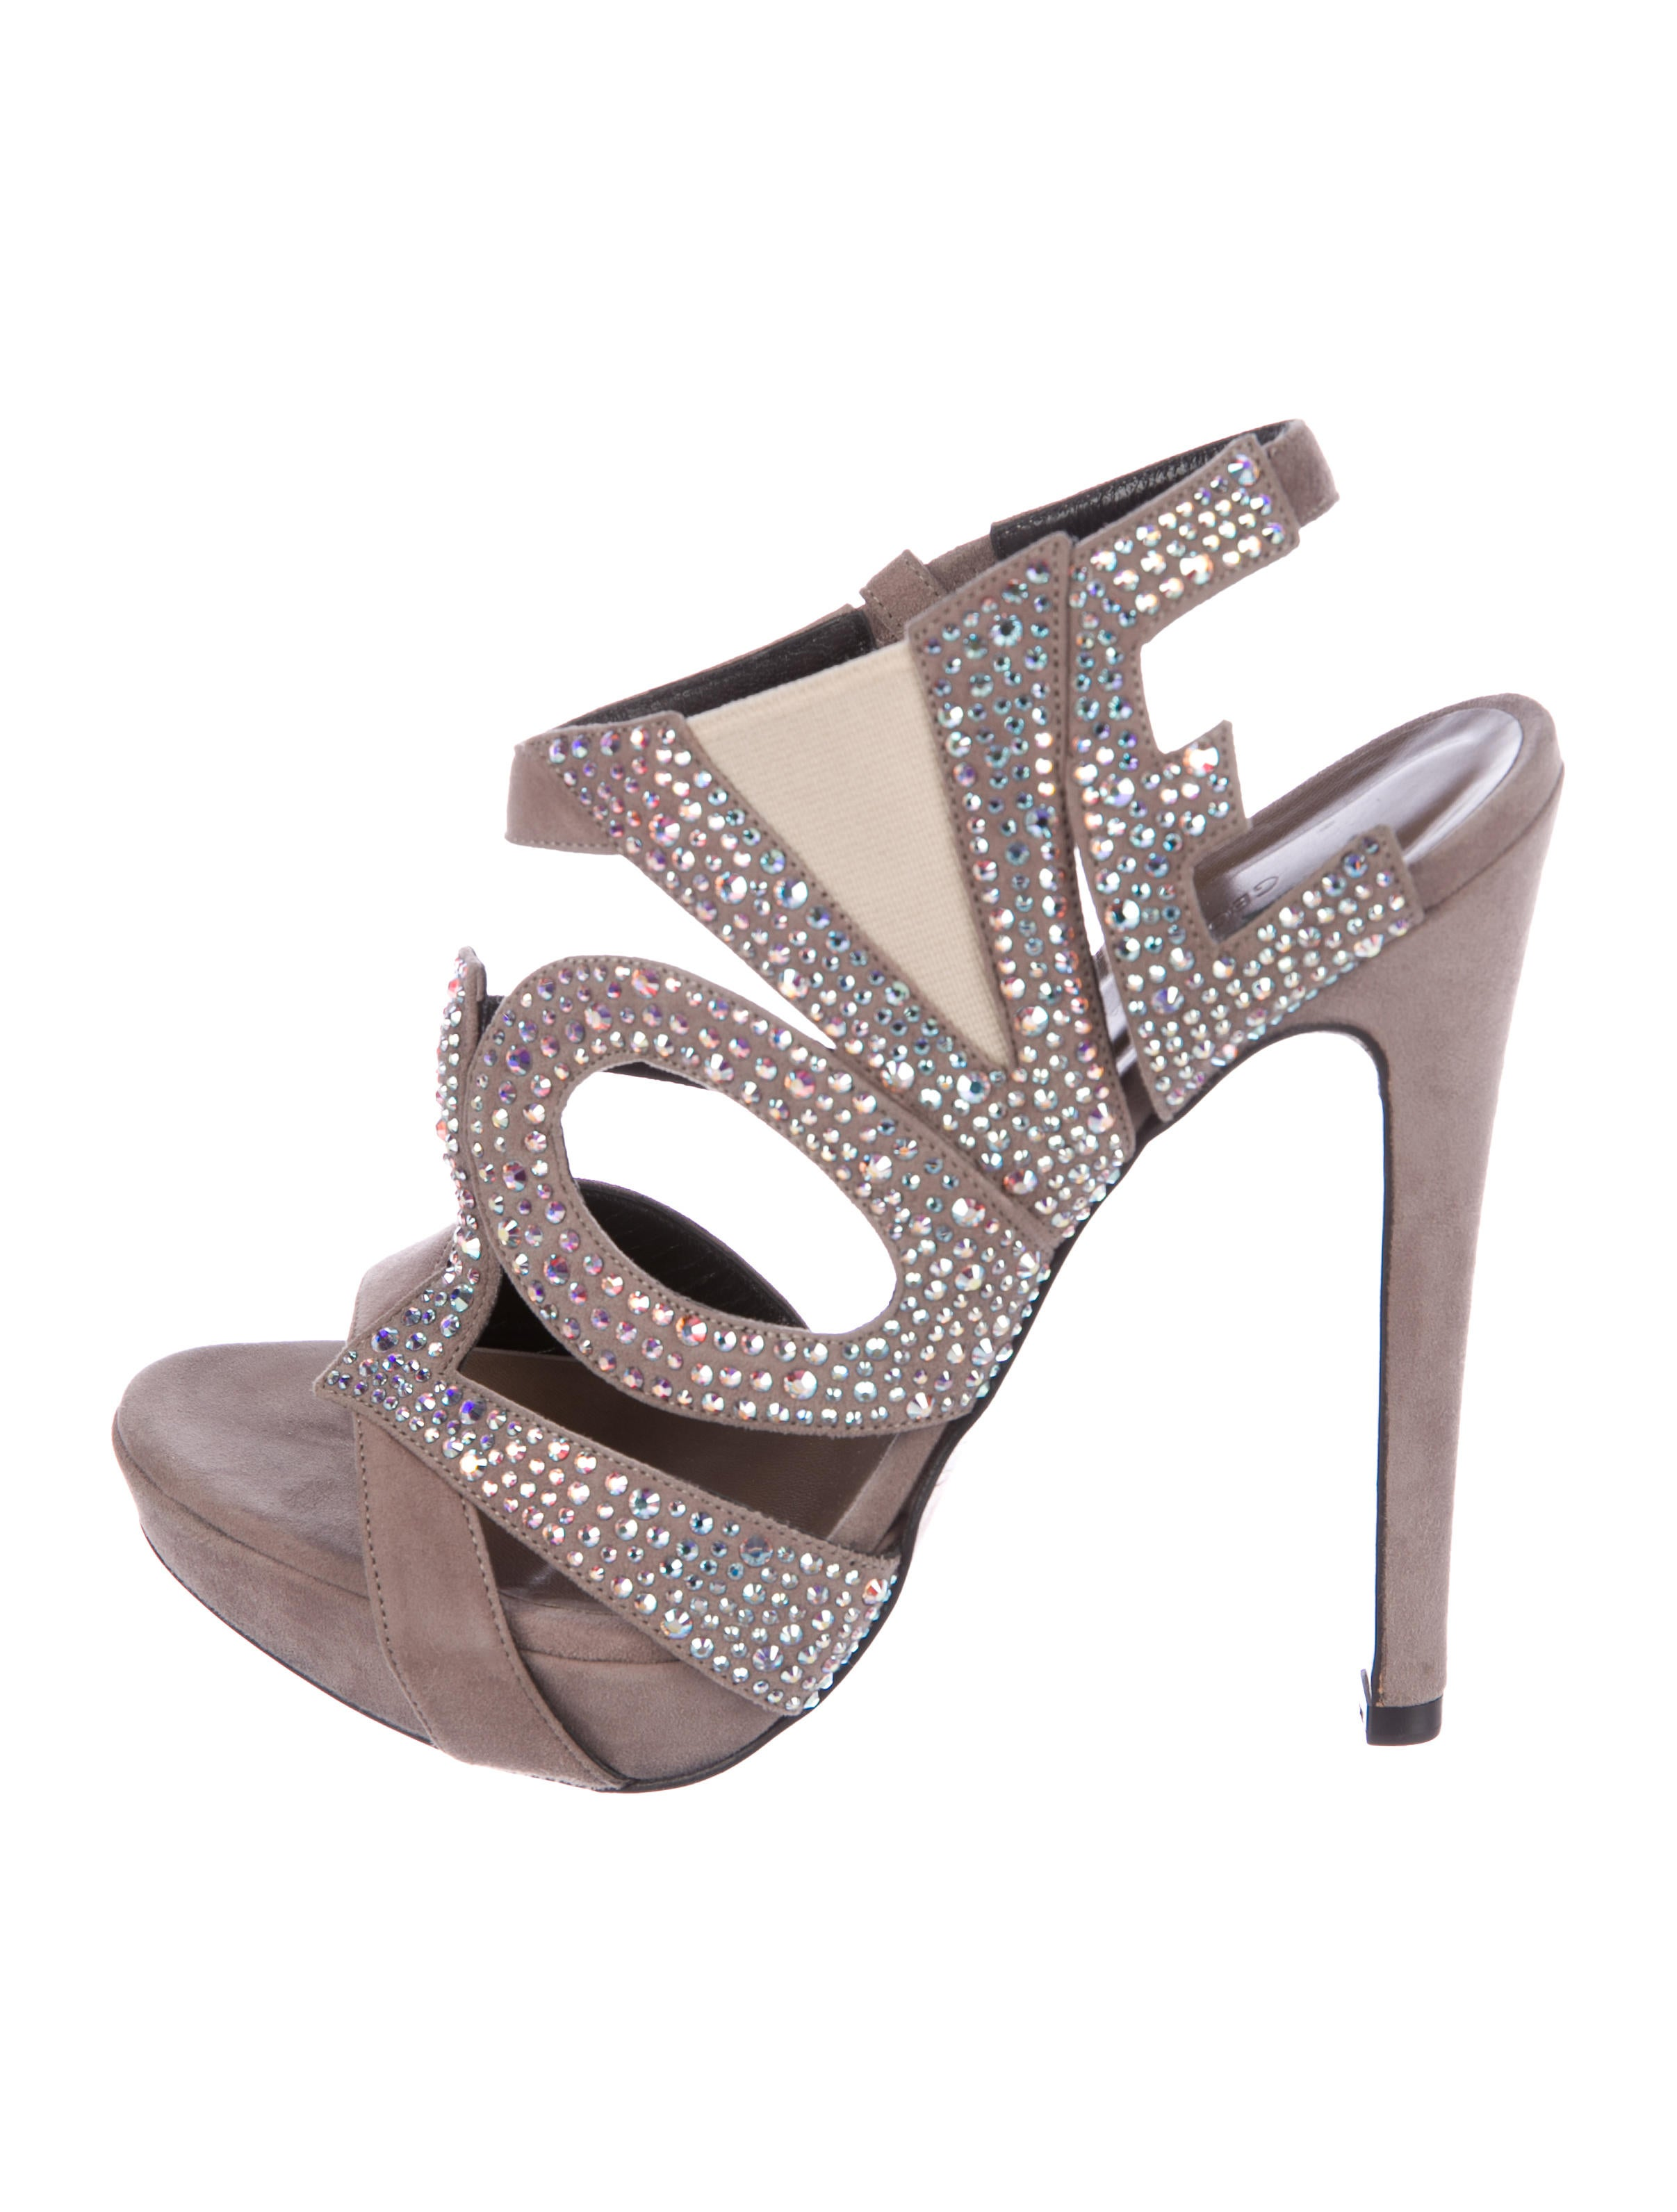 Georgina Goodman Embellished Suede Sandals buy cheap with paypal discount cheapest price outlet 2014 new buy cheap in China on37qqNg6